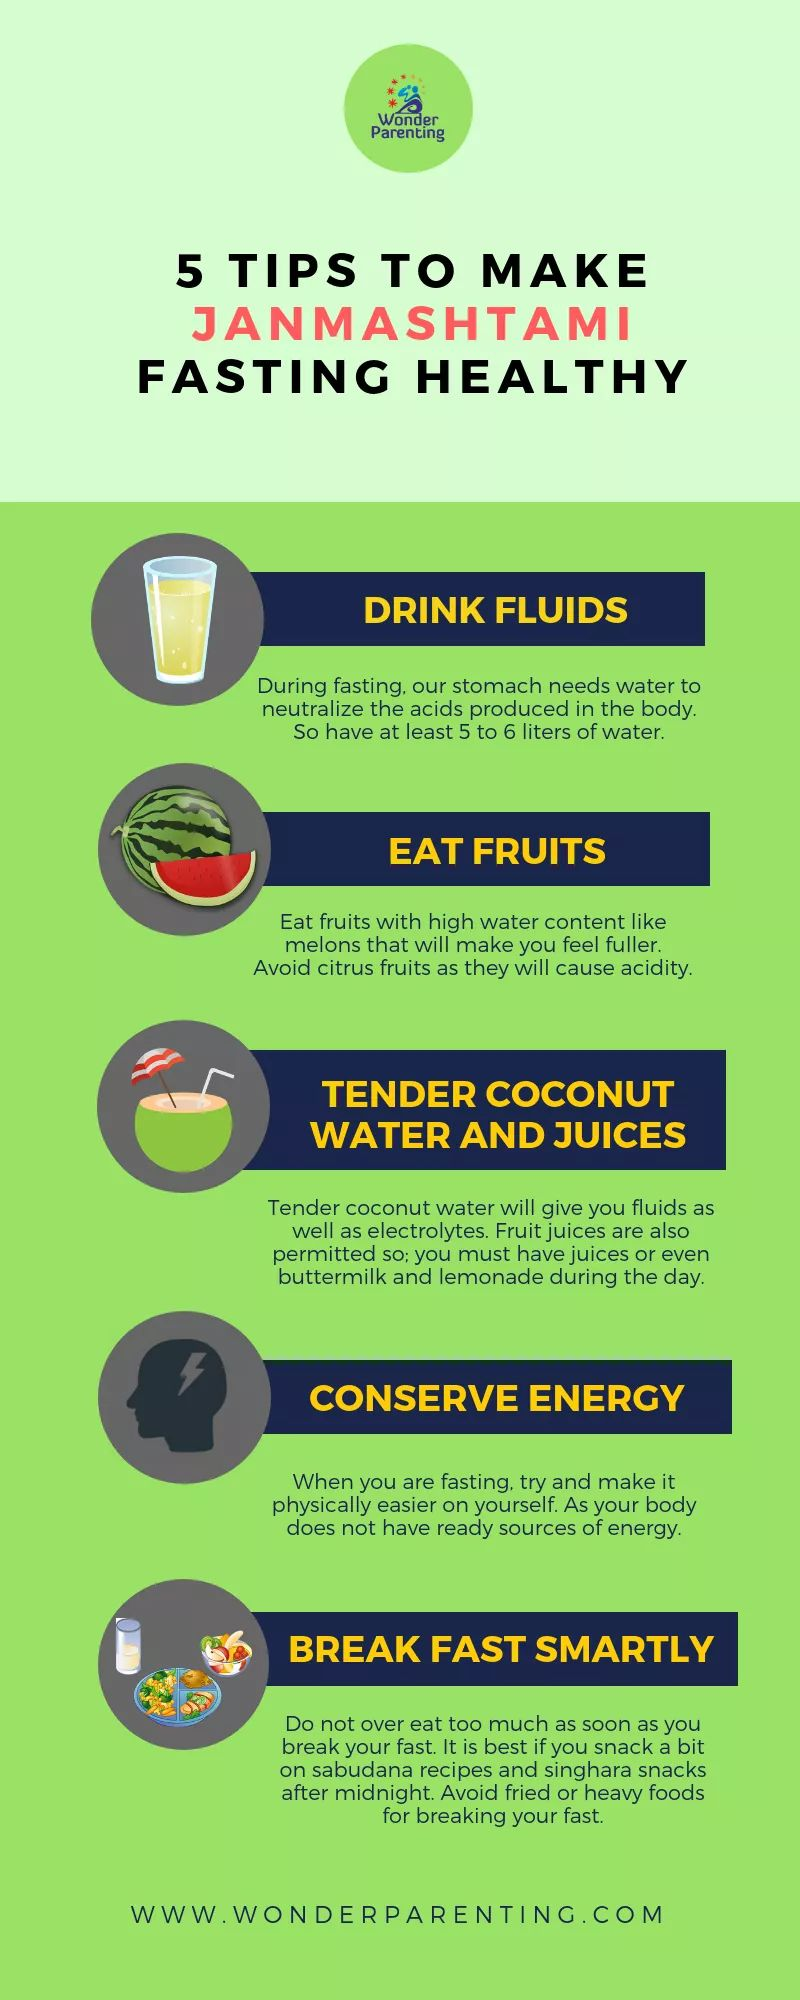 Tips for healthy fasting-wonderparenting